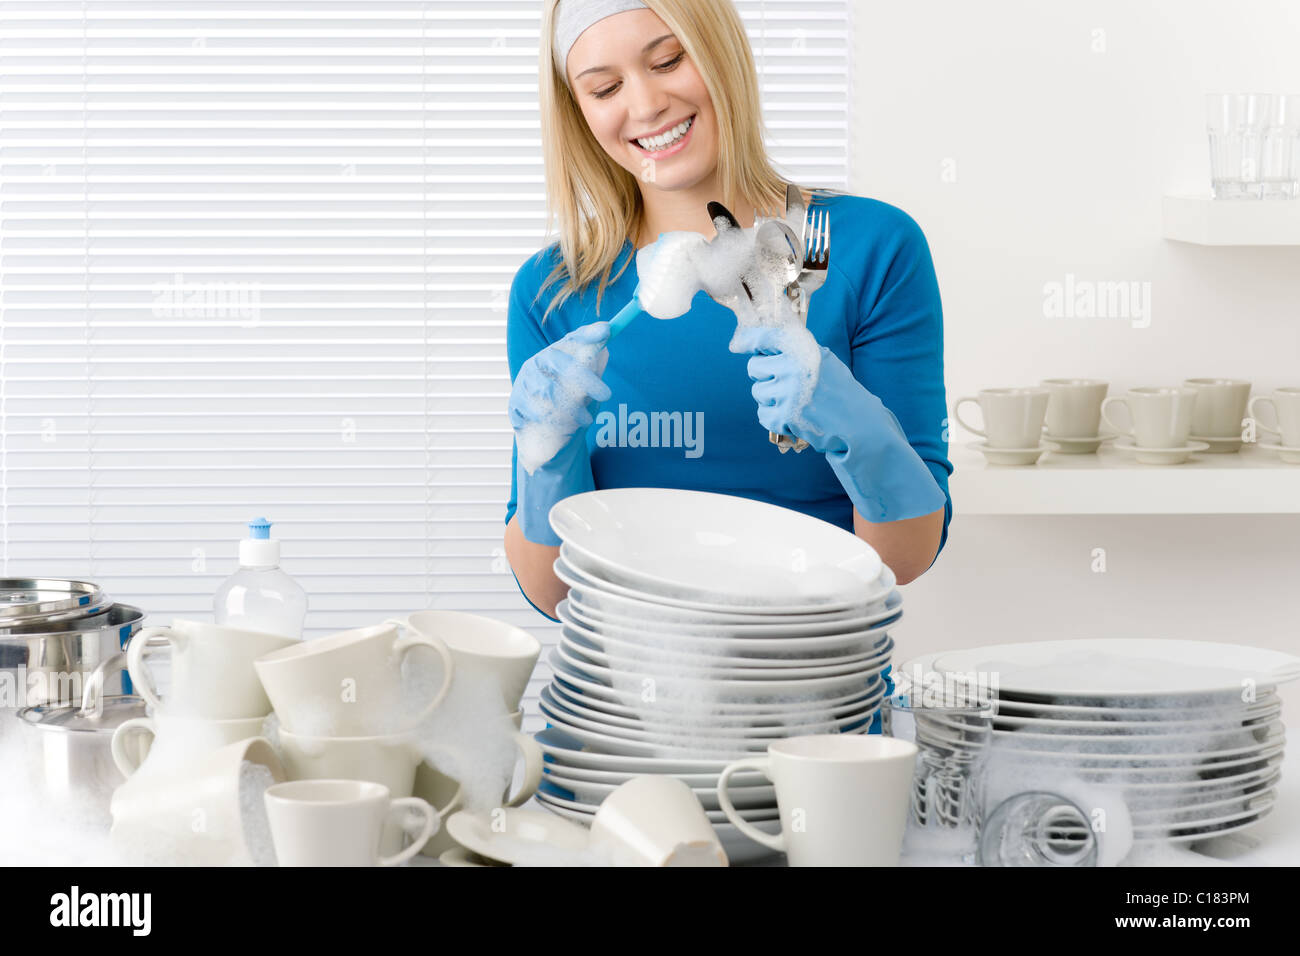 Kitchen Maid Stock Photos & Kitchen Maid Stock Images - Alamy